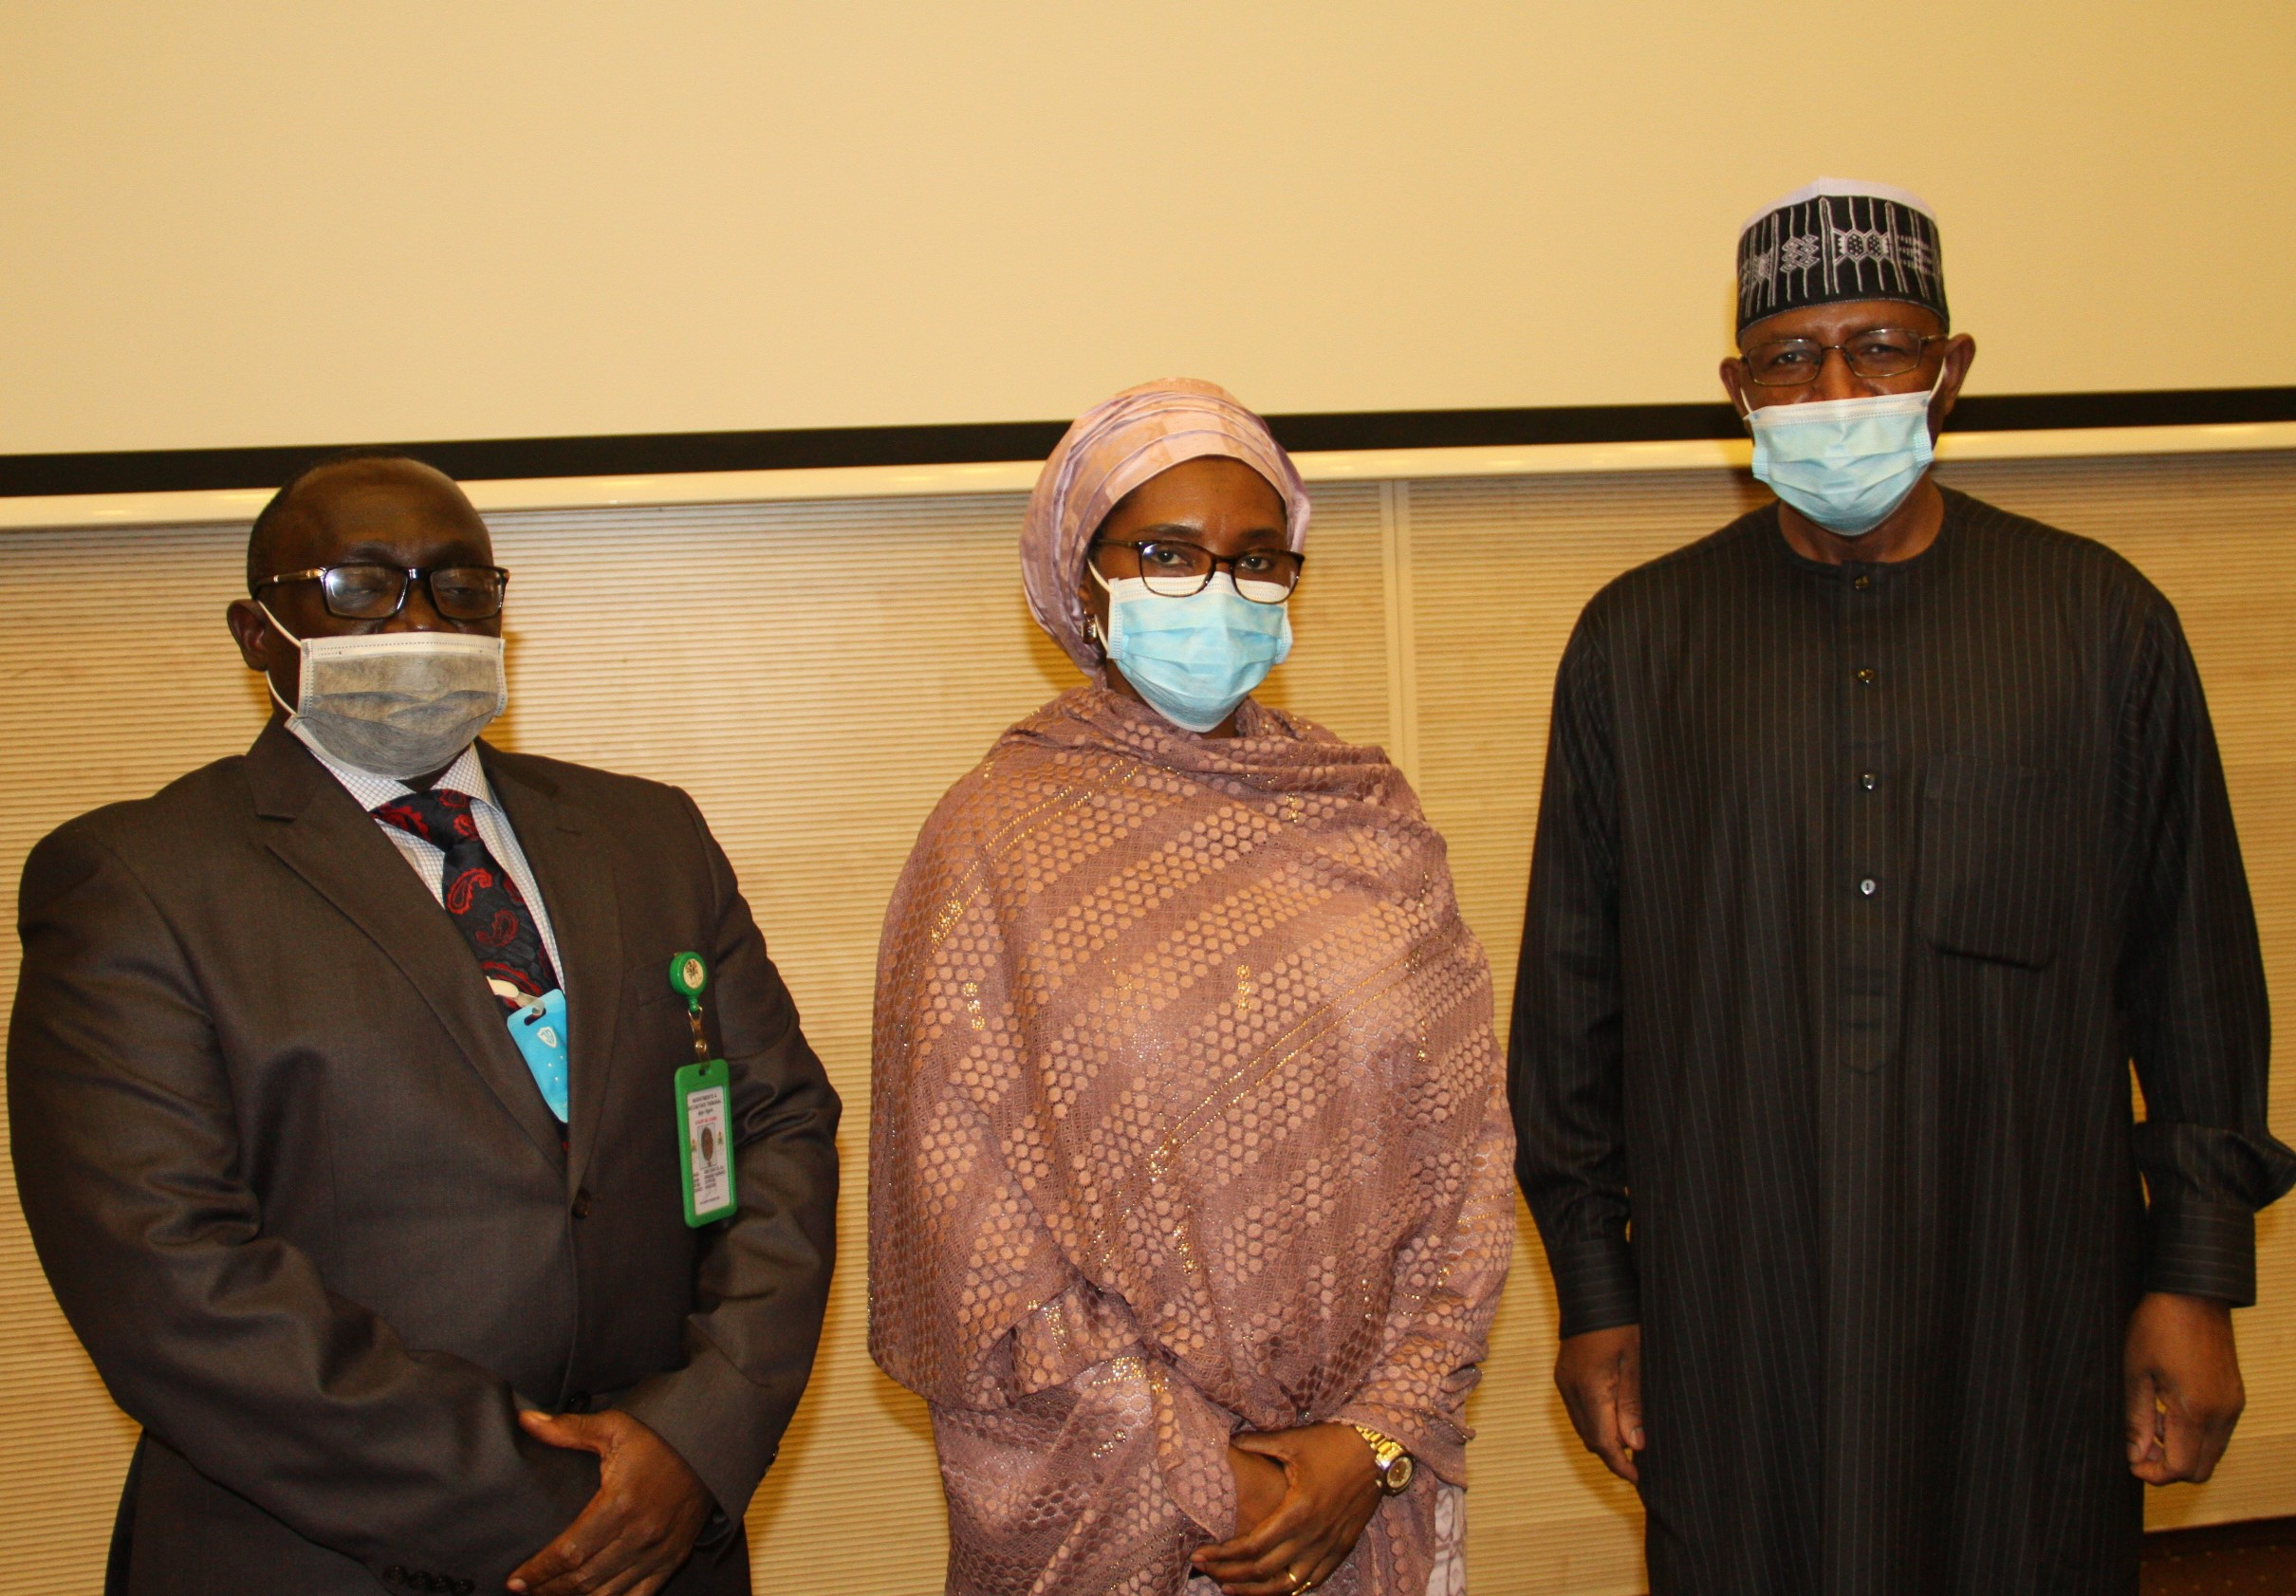 L-R,   Chairman, Investments and Securities Tribunal Mr Amos Azi, Minister of Finance, Budget and National Planning Mrs Zainab Ahmed and Director General, Securities and Exchange Commission Mr Lamido Yuguda during the Inauguration of the IST Board Members by the Minister of Finance in Abuja